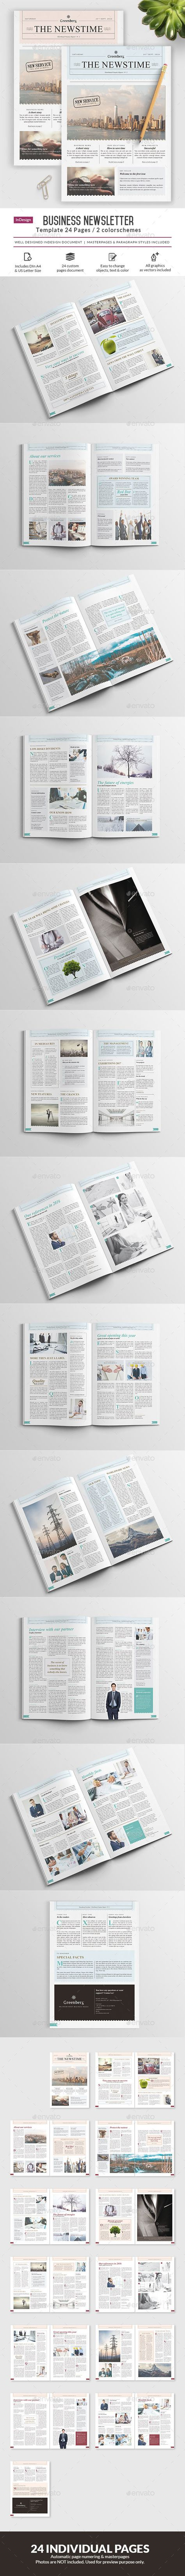 Business Newsletter - 24 pages by corrella2_DISABLED